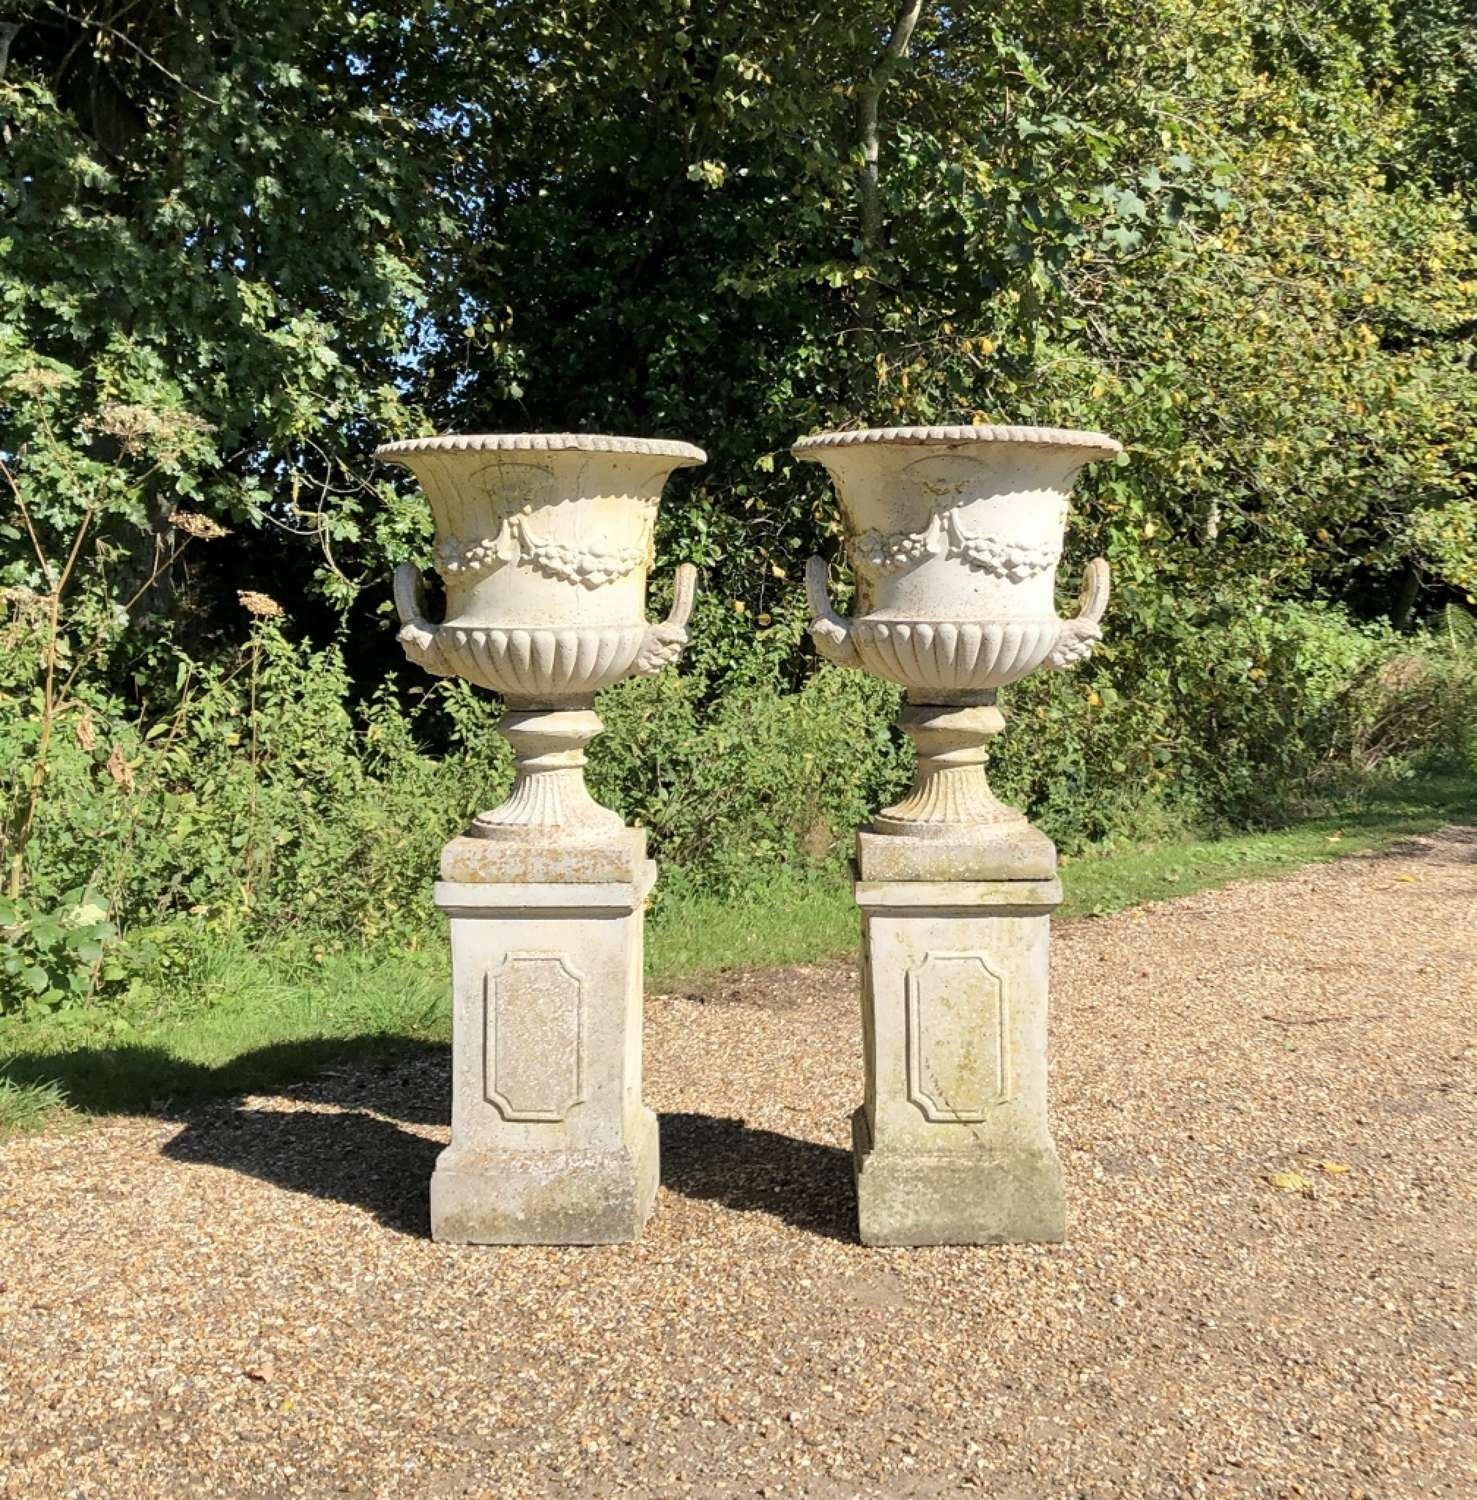 Pair of Handled Urns with Pedestals